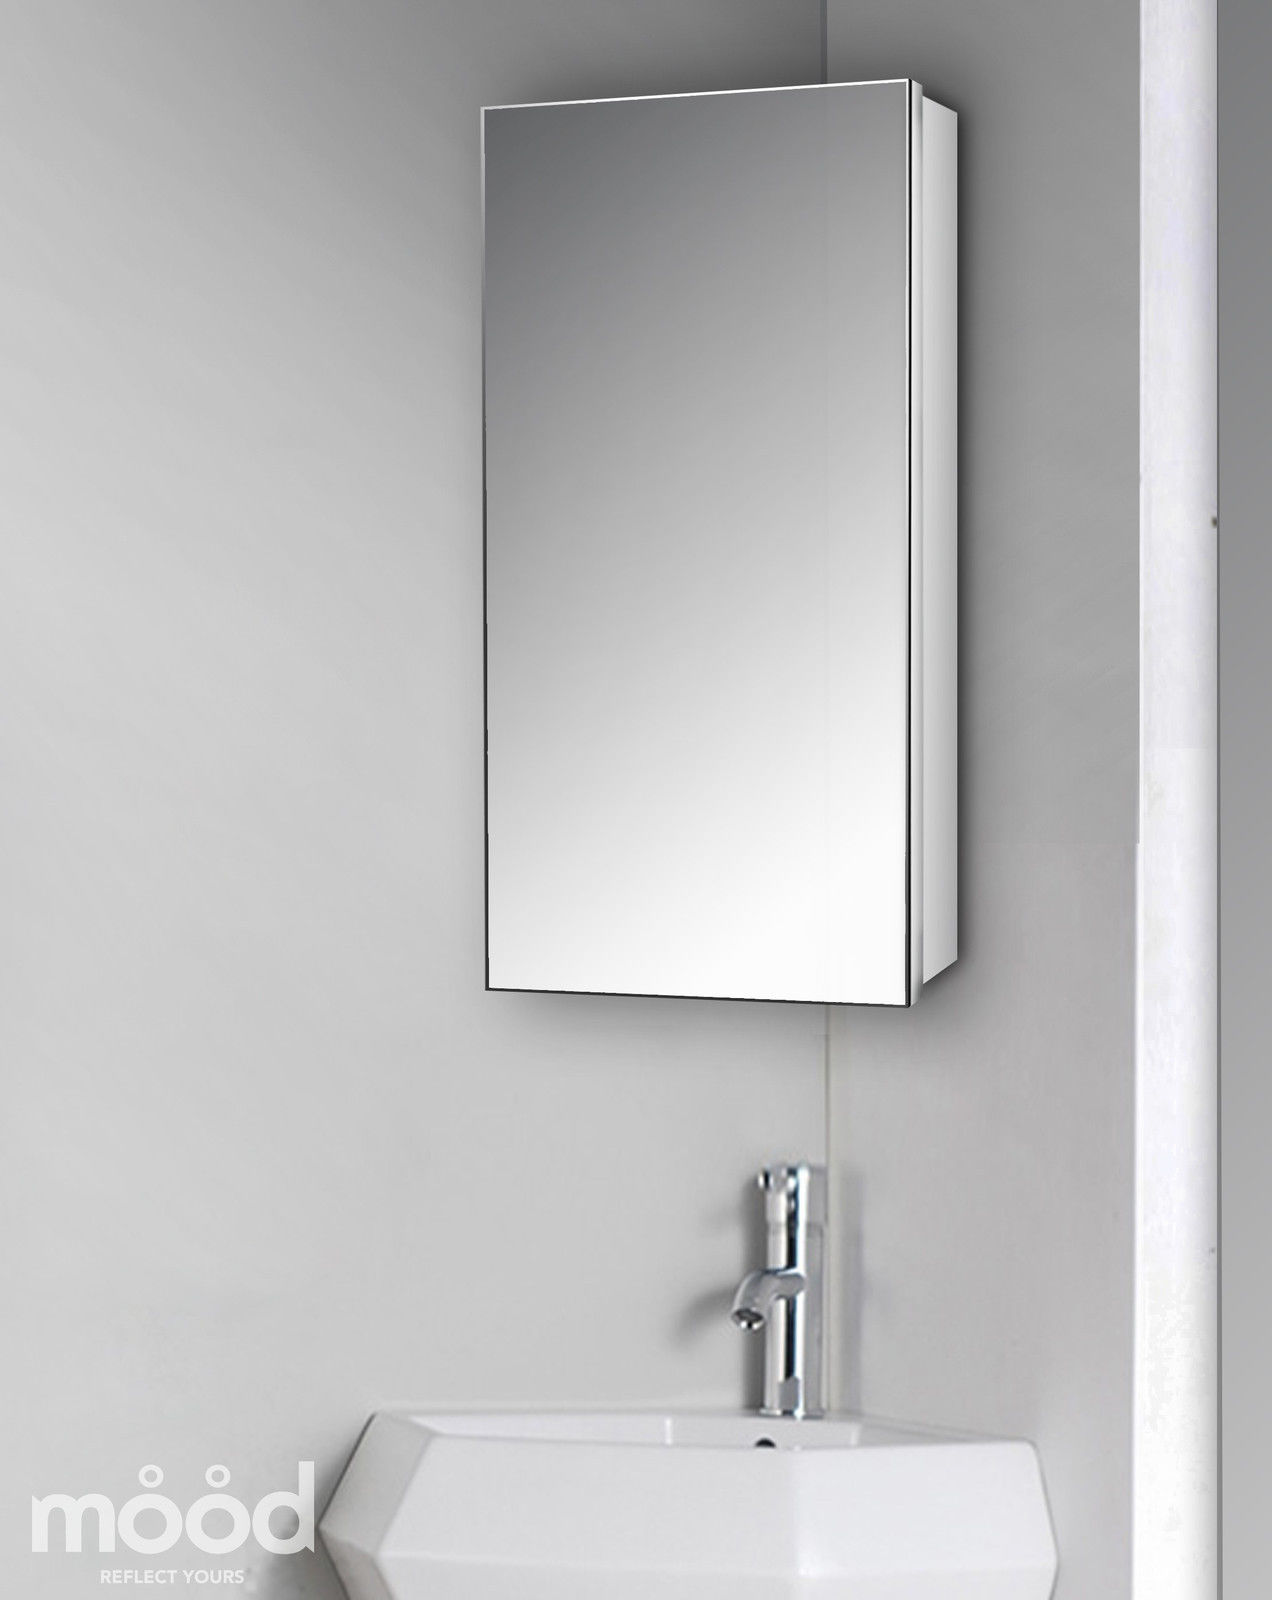 Elegant slim corner bathroom mirror cabinet 65x30 with mirror inside c24 ebay Neue design bathroom mirror